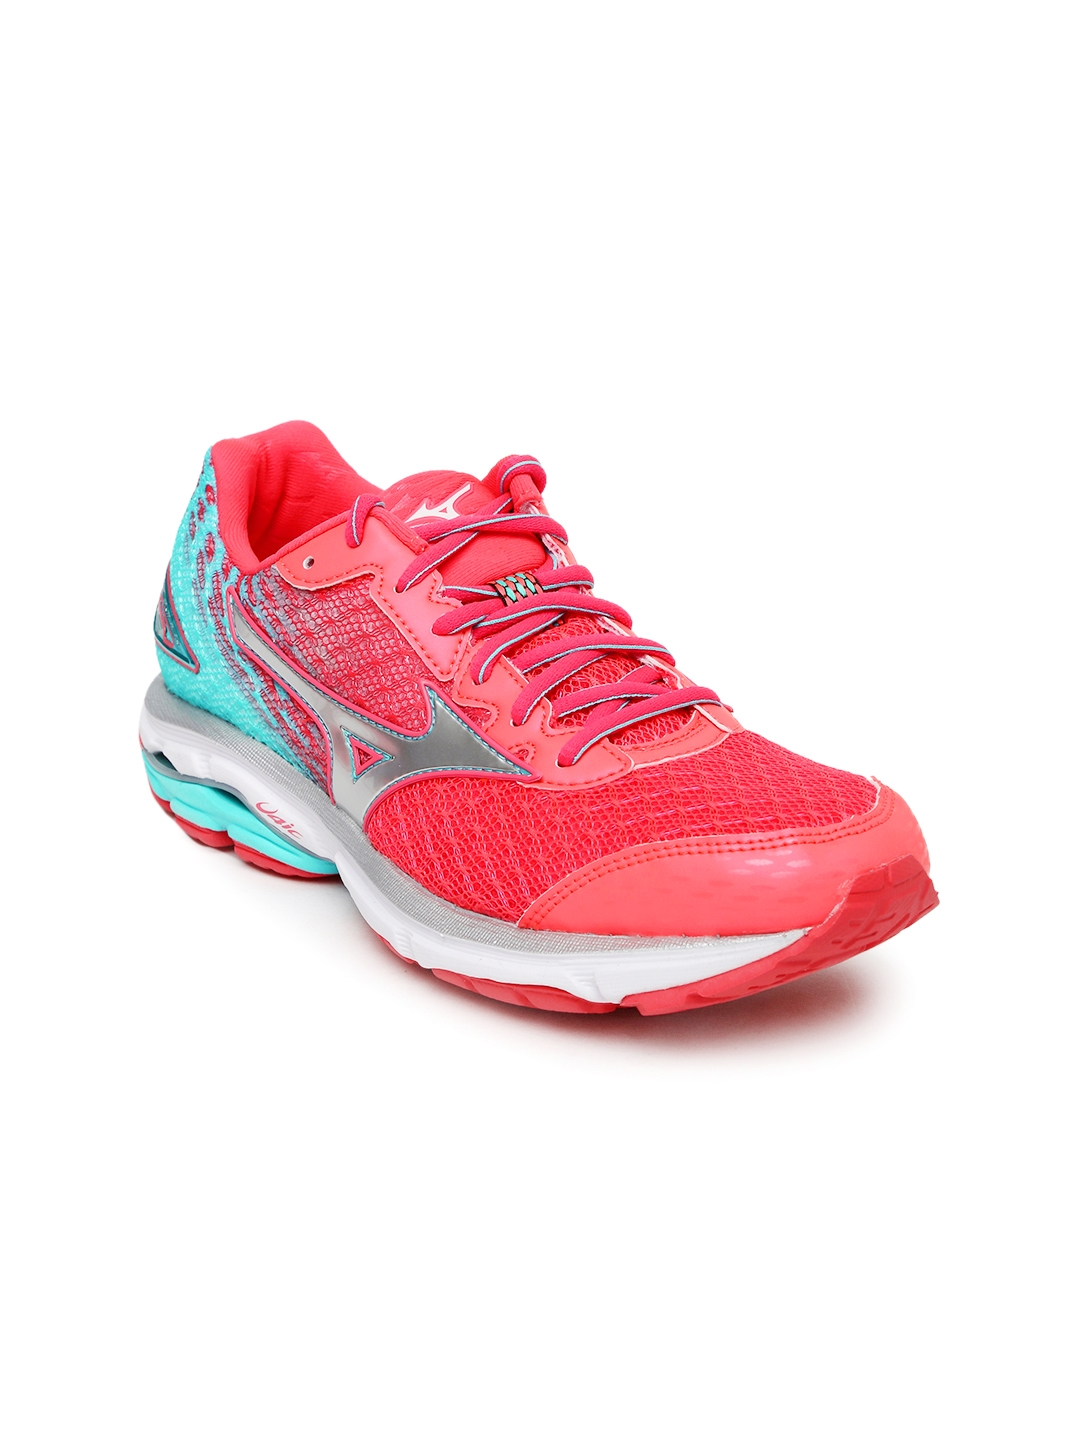 36c67c260419 Buy Mizuno Women Pink Wave Rider 19 Running Shoes - Sports Shoes for ...